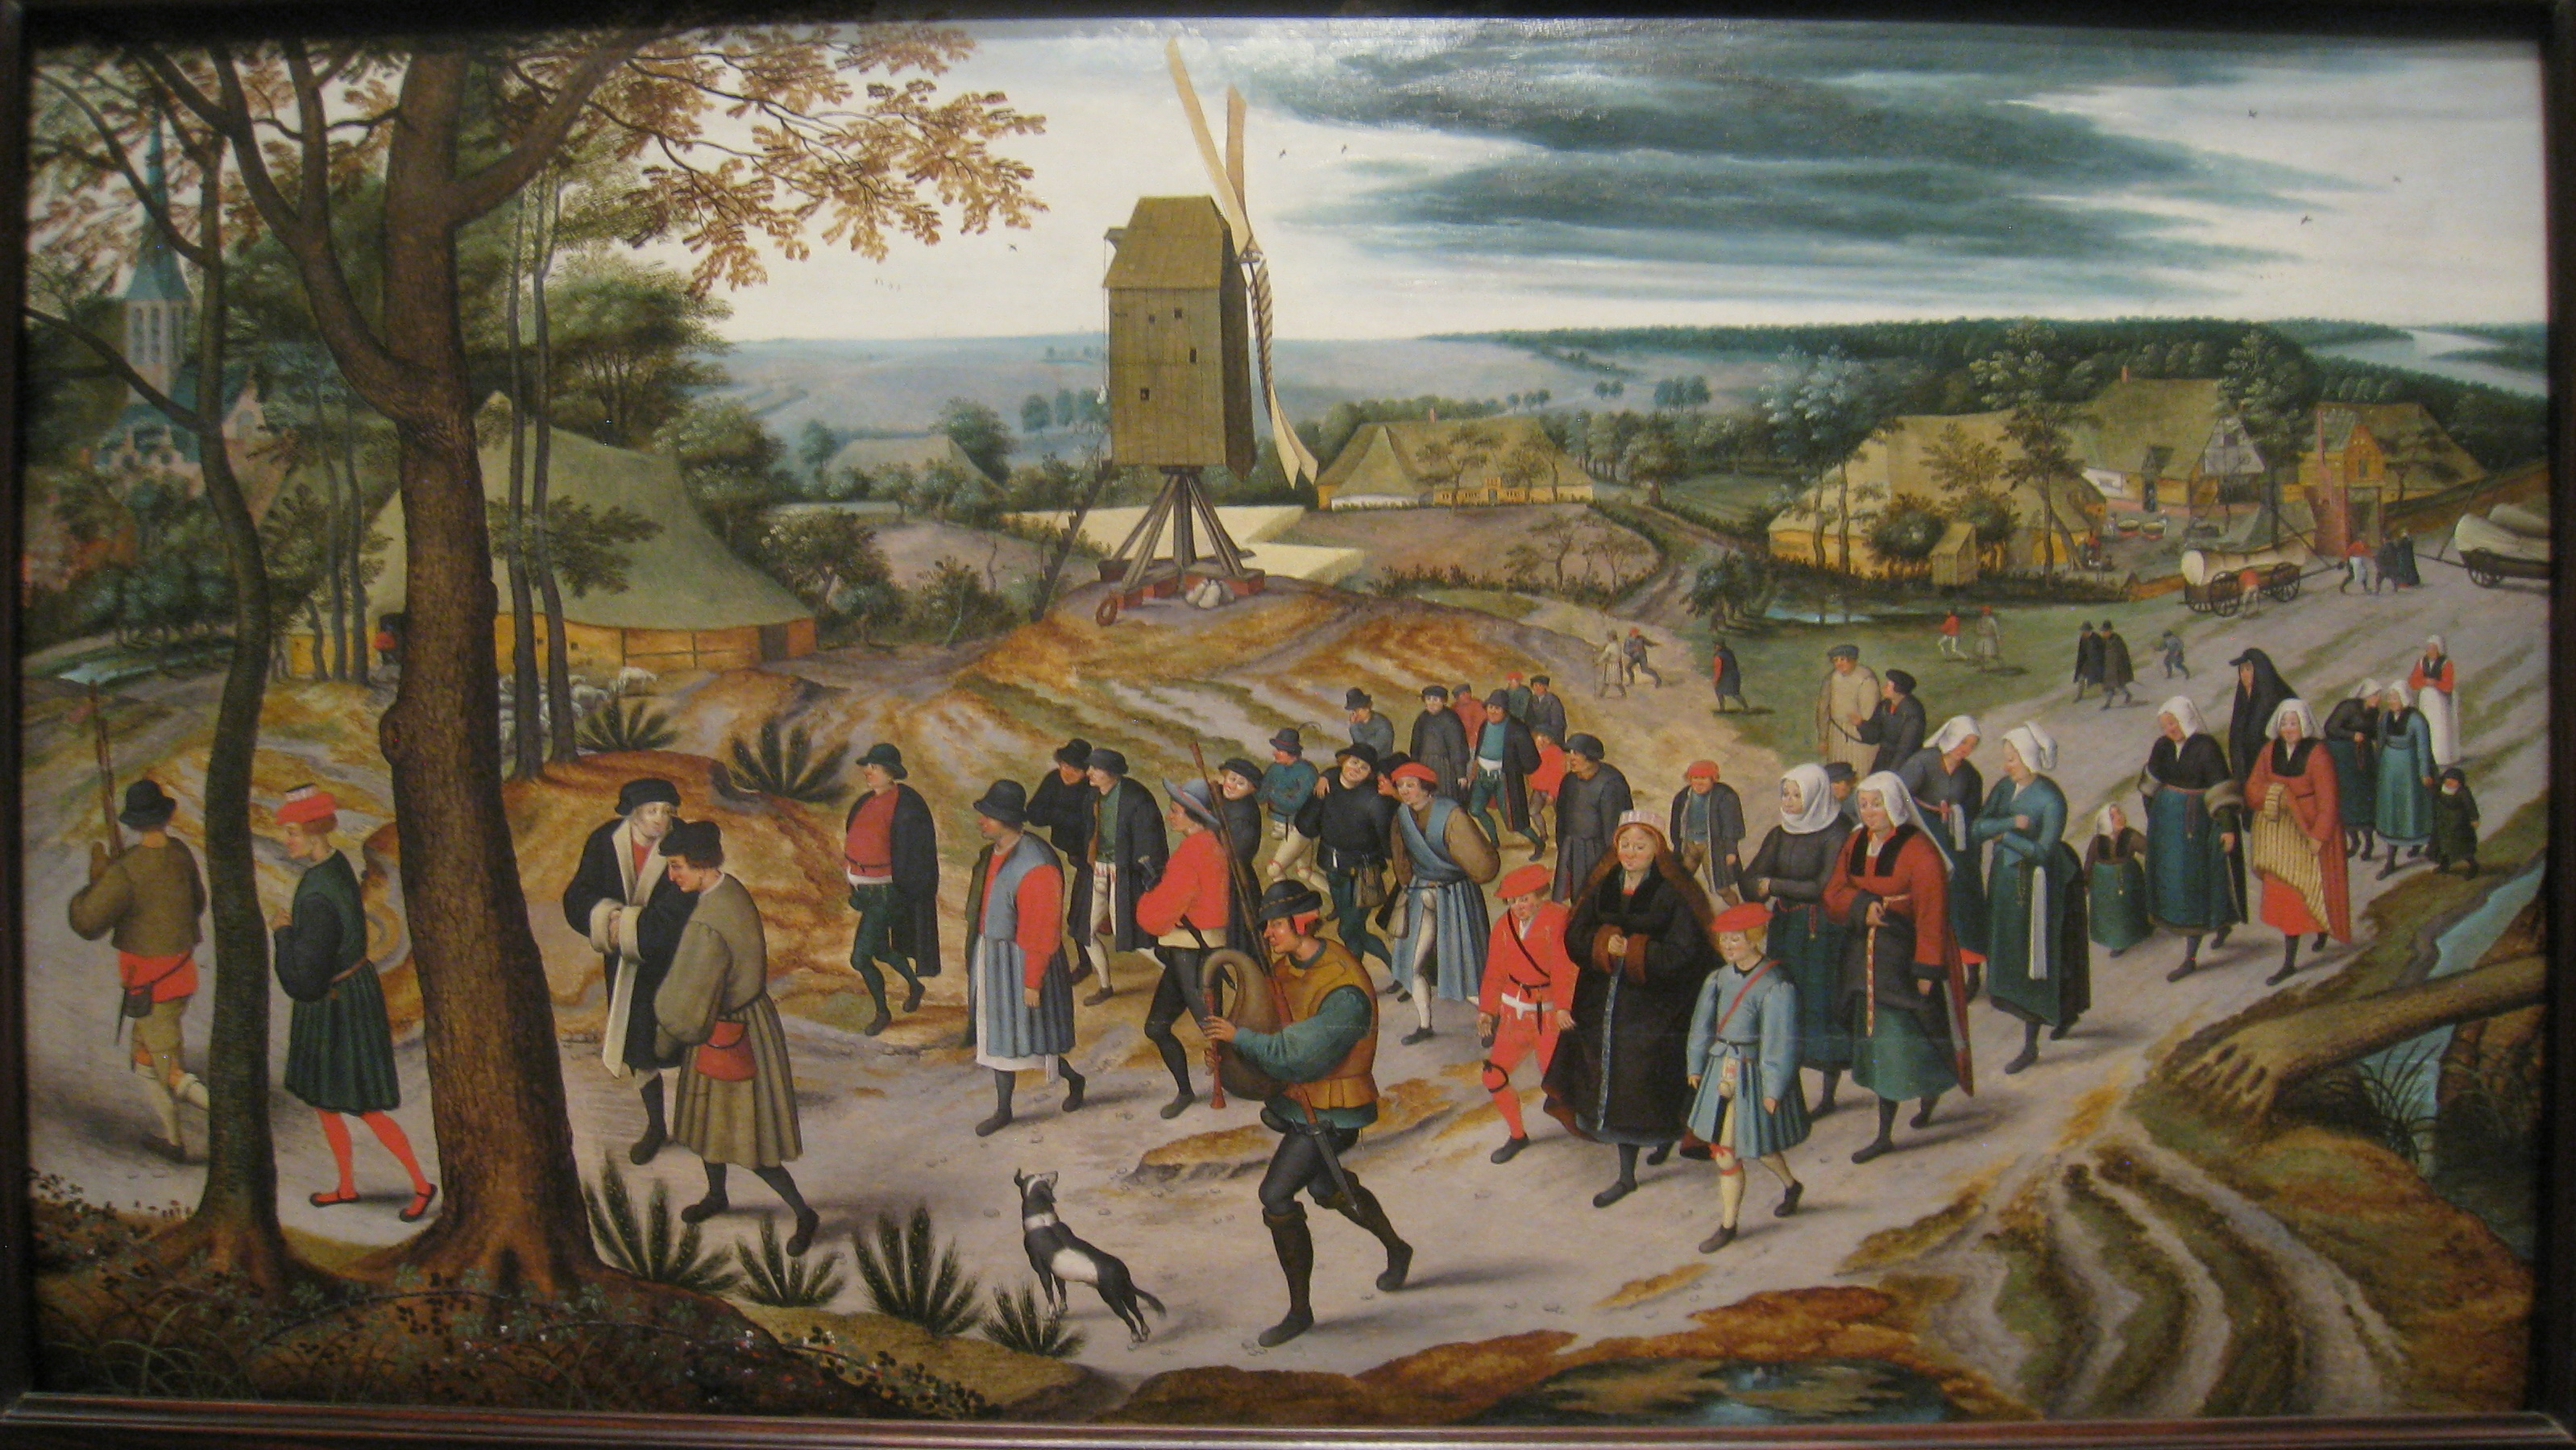 File:The Marriage Procession, 1623, by Pieter Brueghel the Younger (1564-